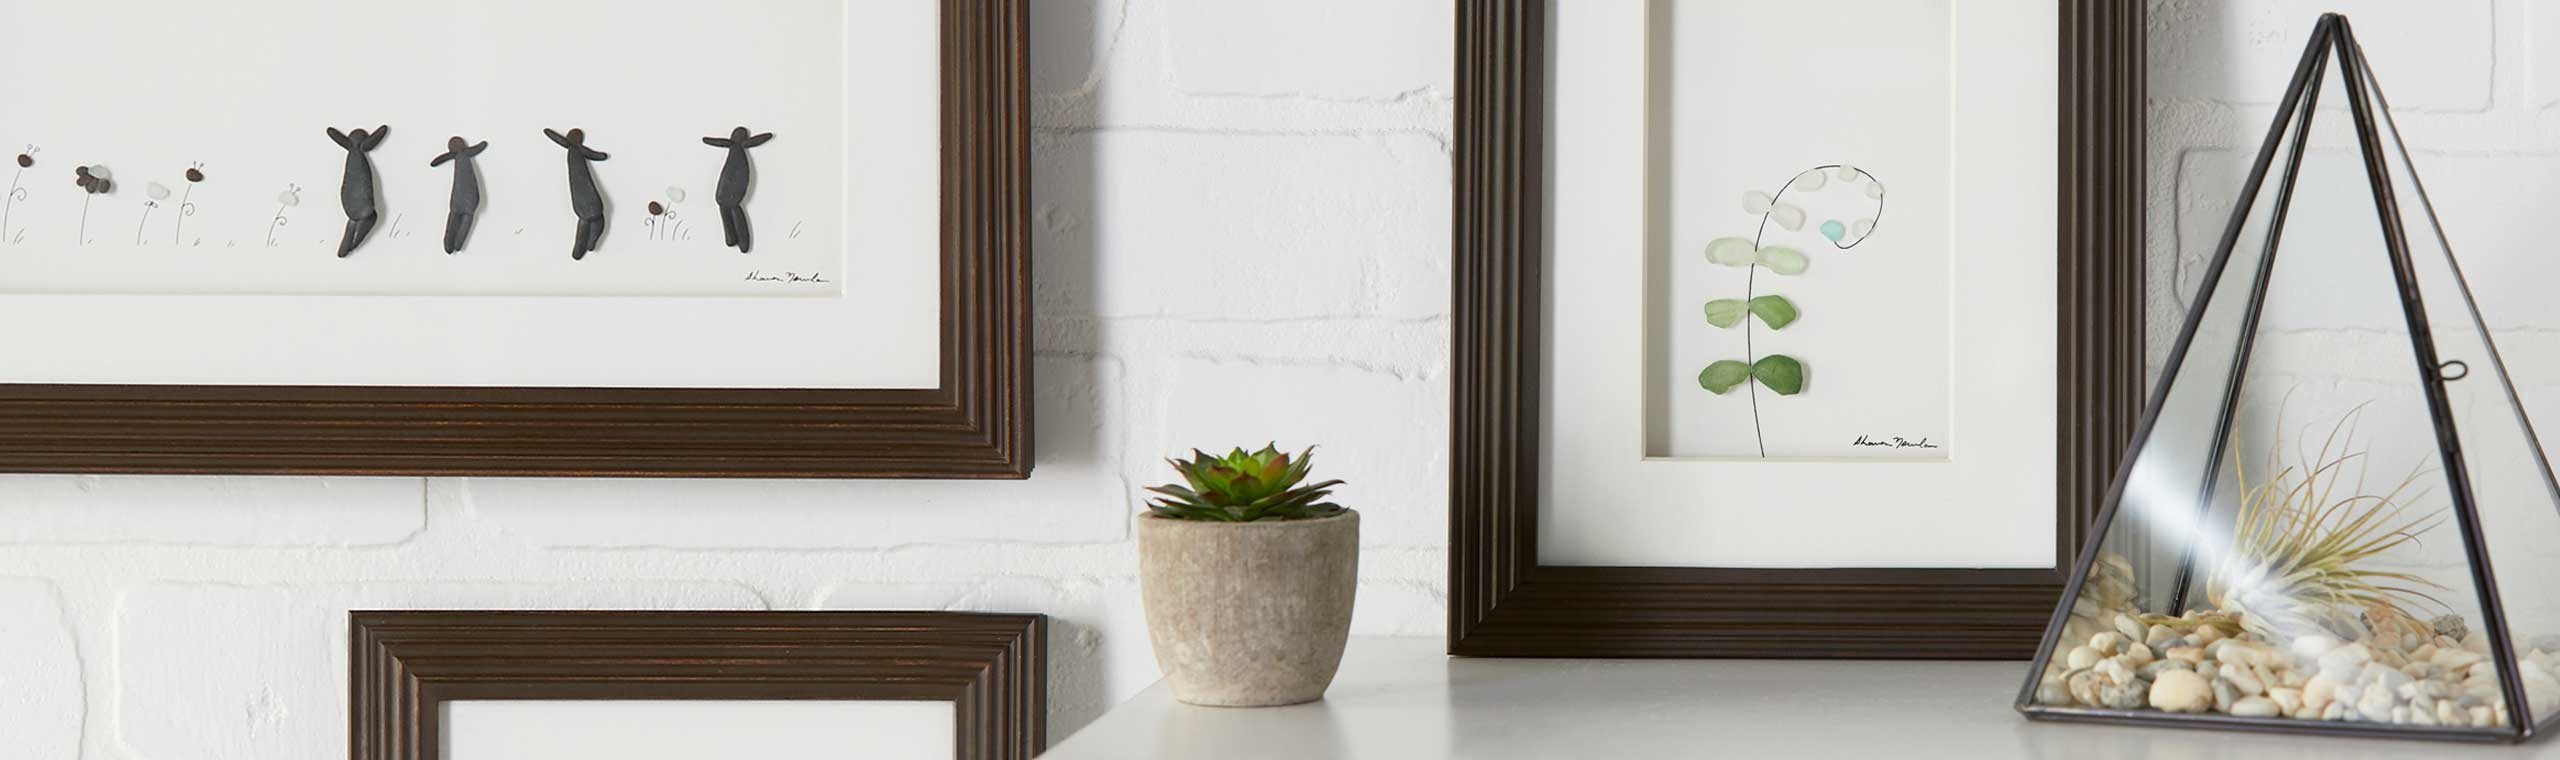 Metal-edged glass terranium and framed leaf art made of glass